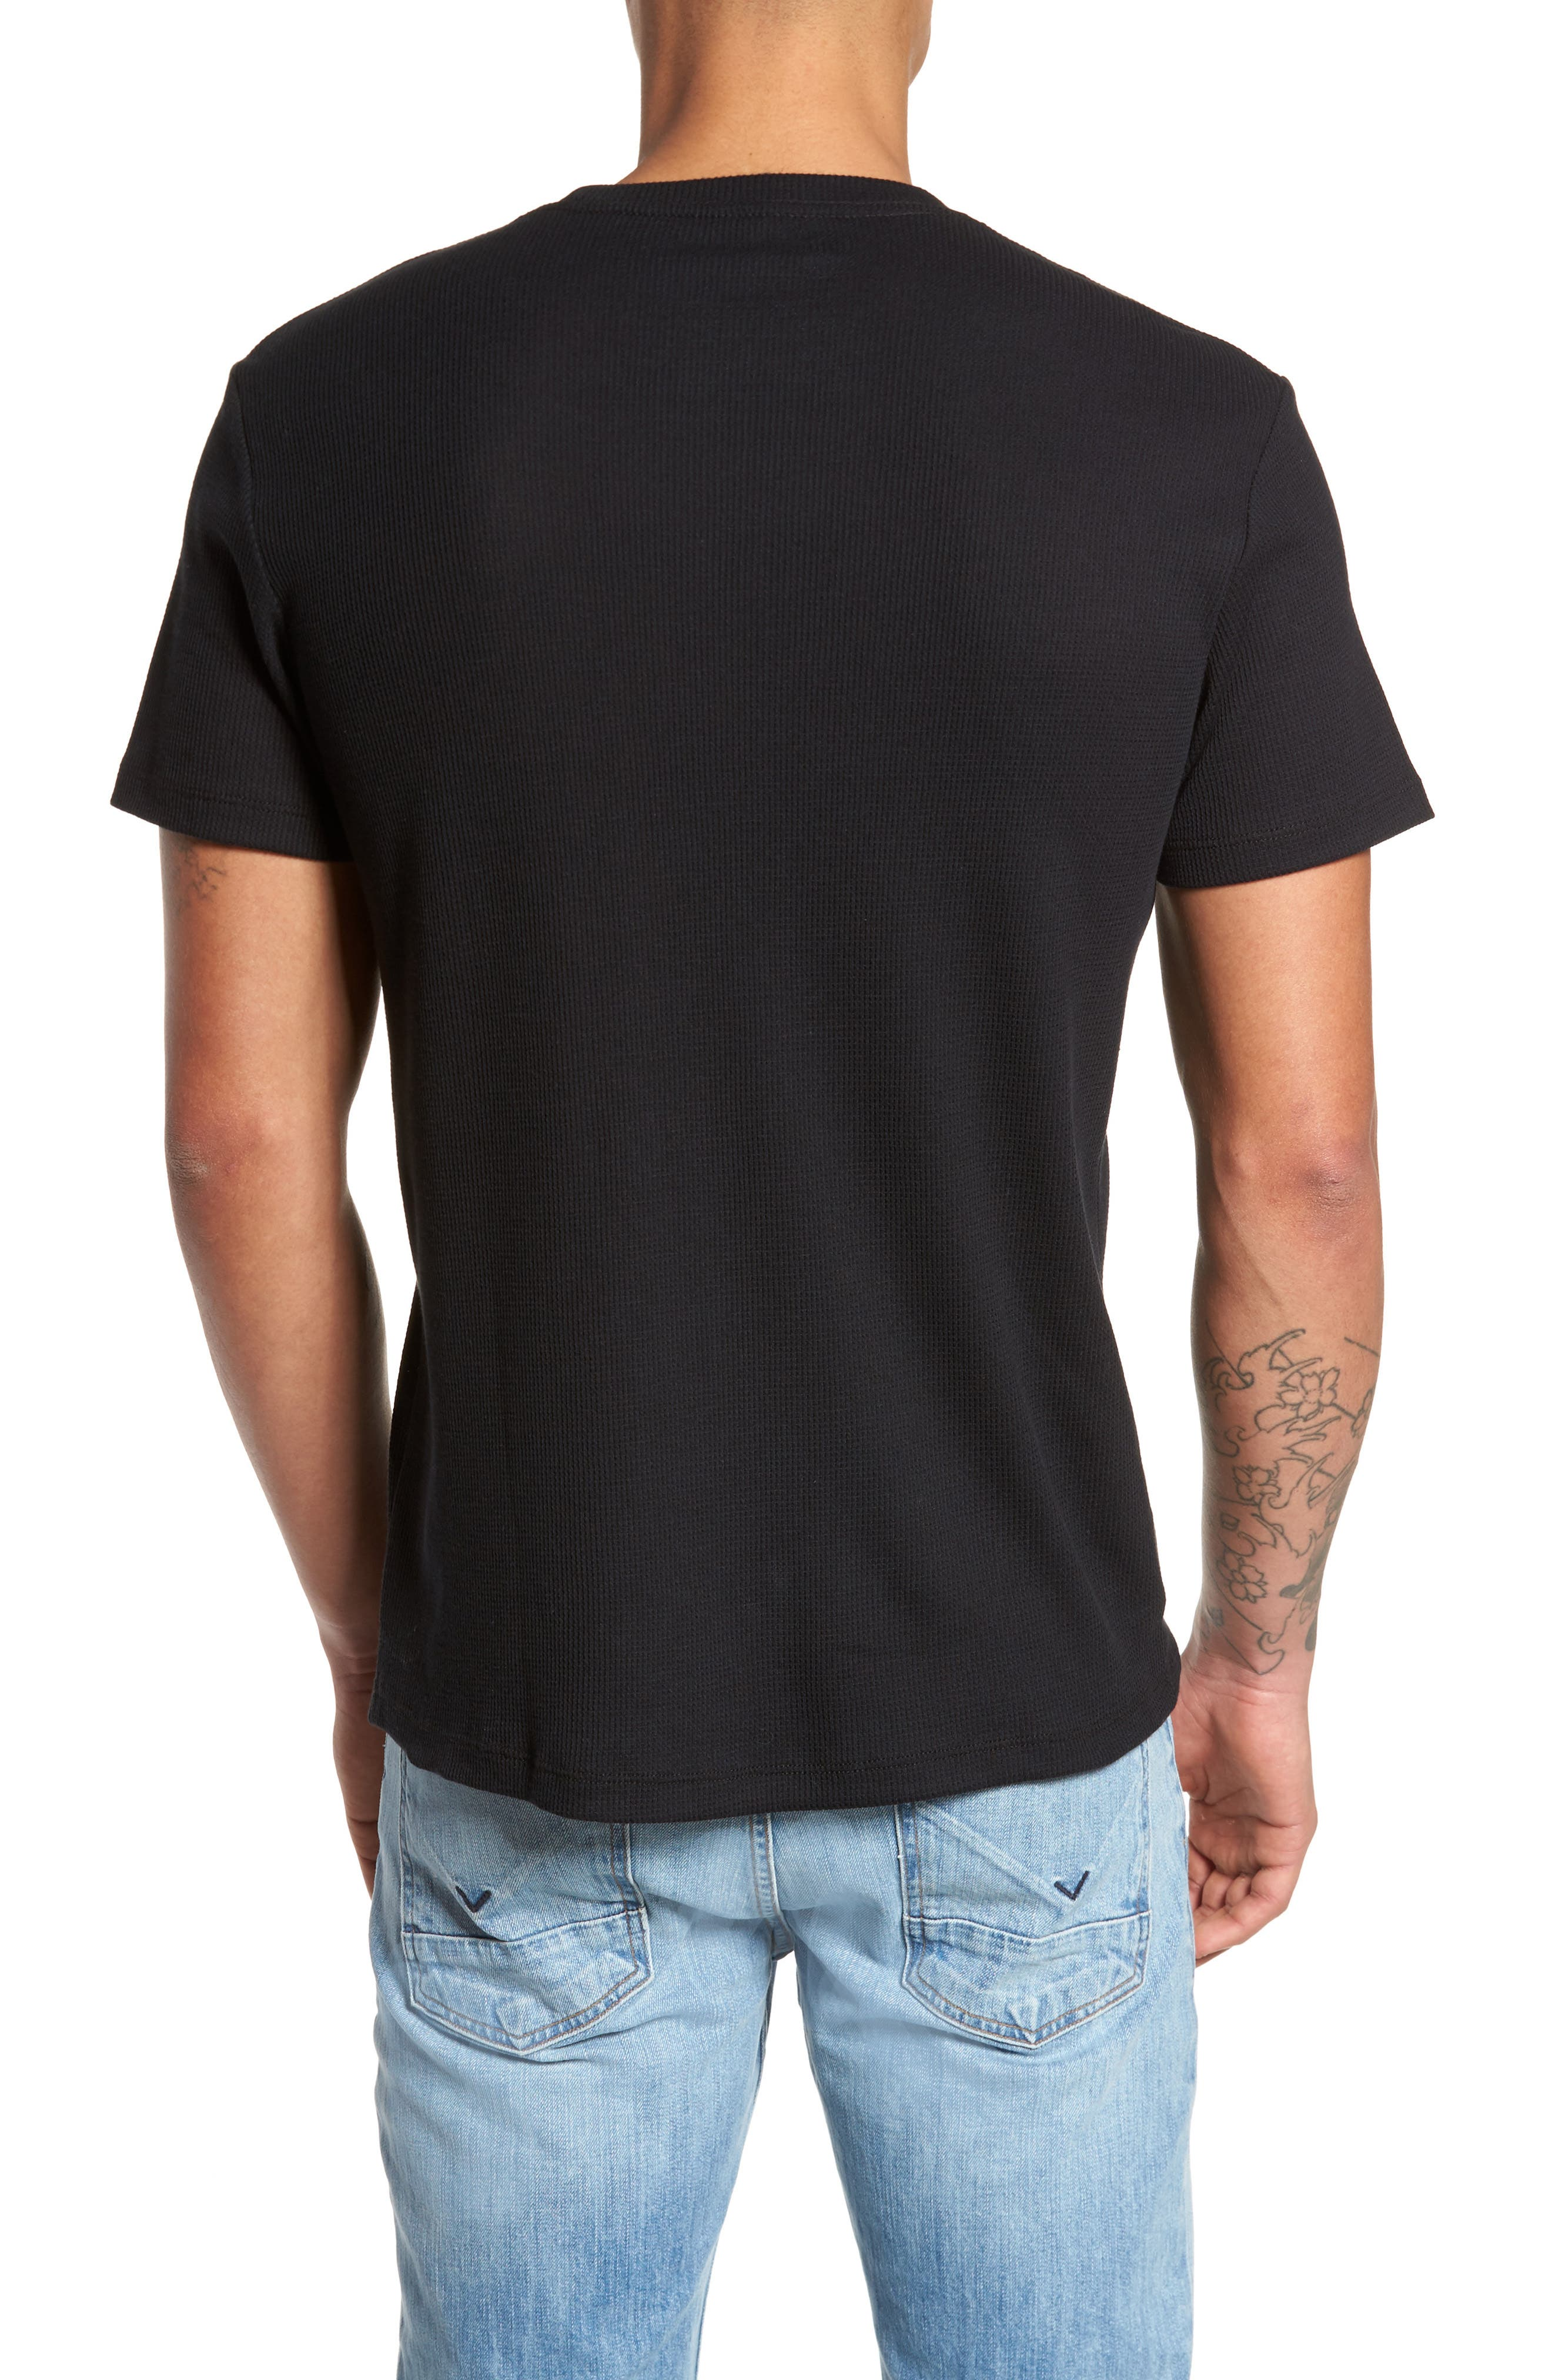 Thermal T-Shirt,                             Alternate thumbnail 2, color,                             Black Rock